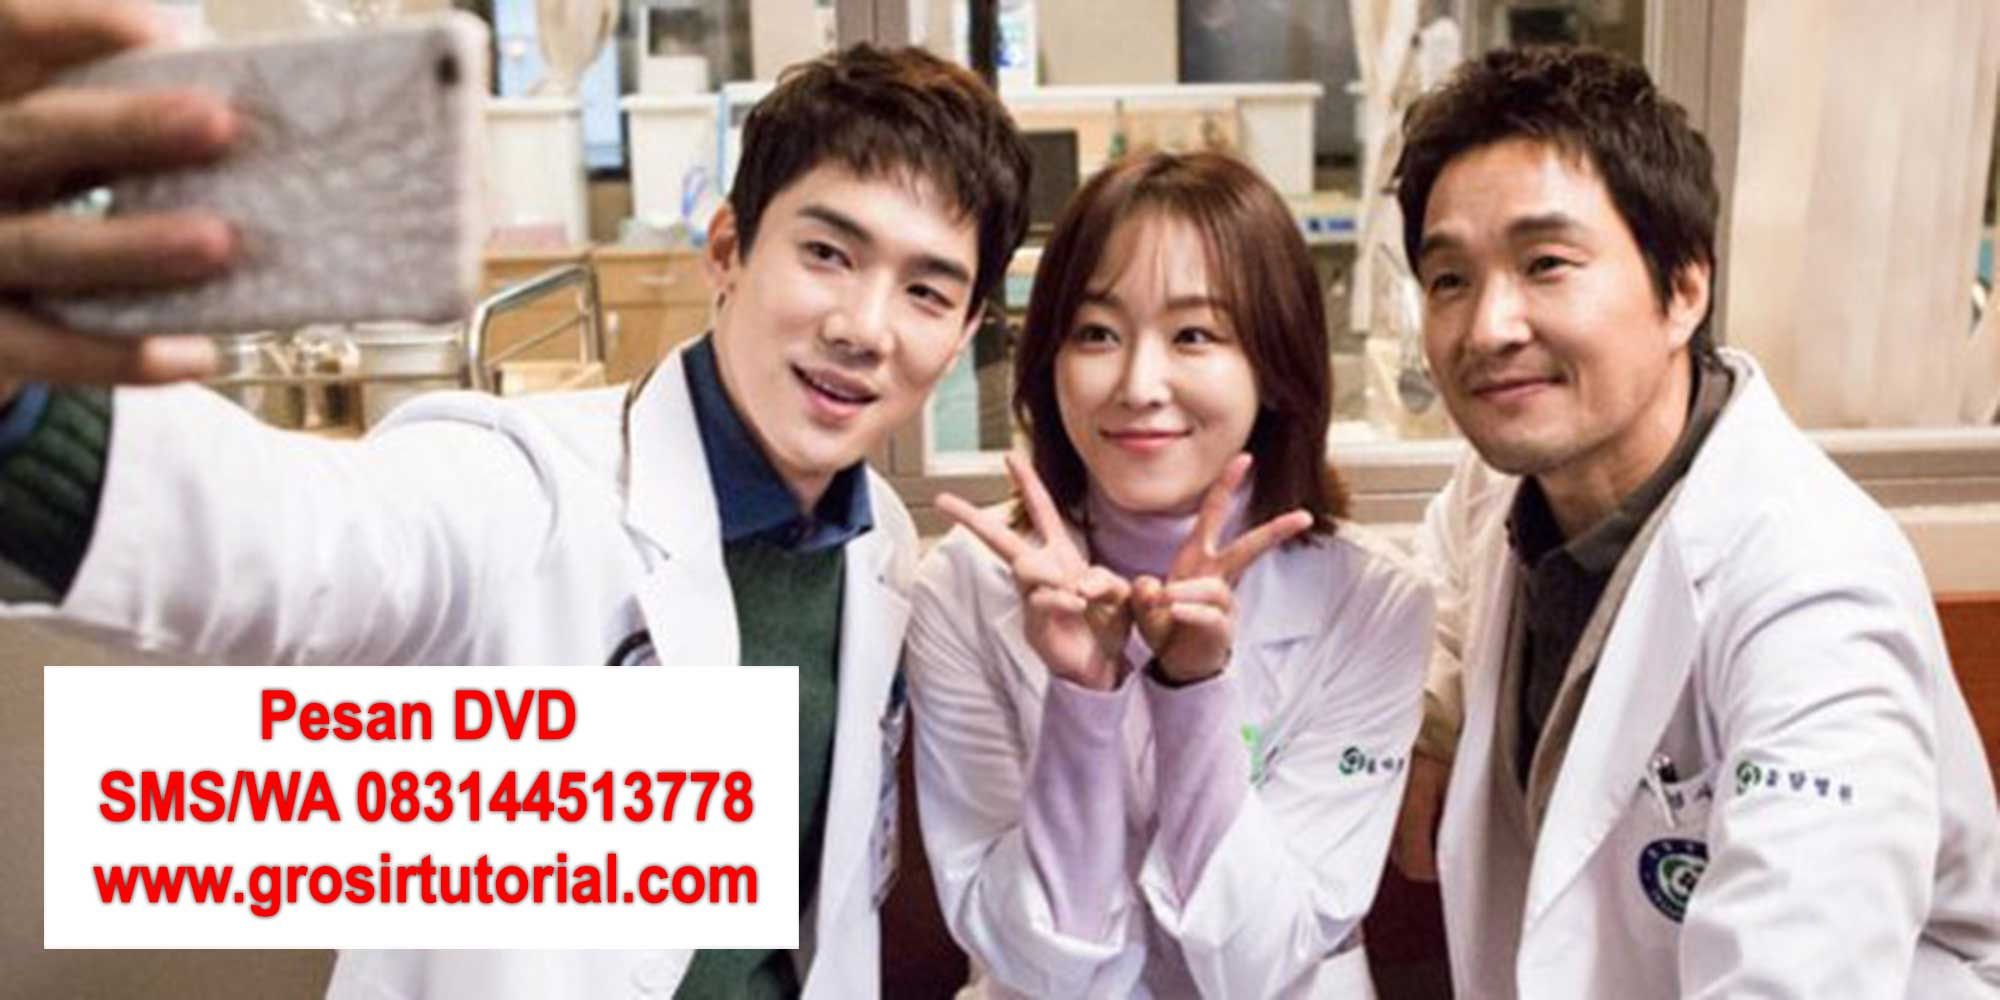 cari-DVD-koreaa-Romantic-Doctor